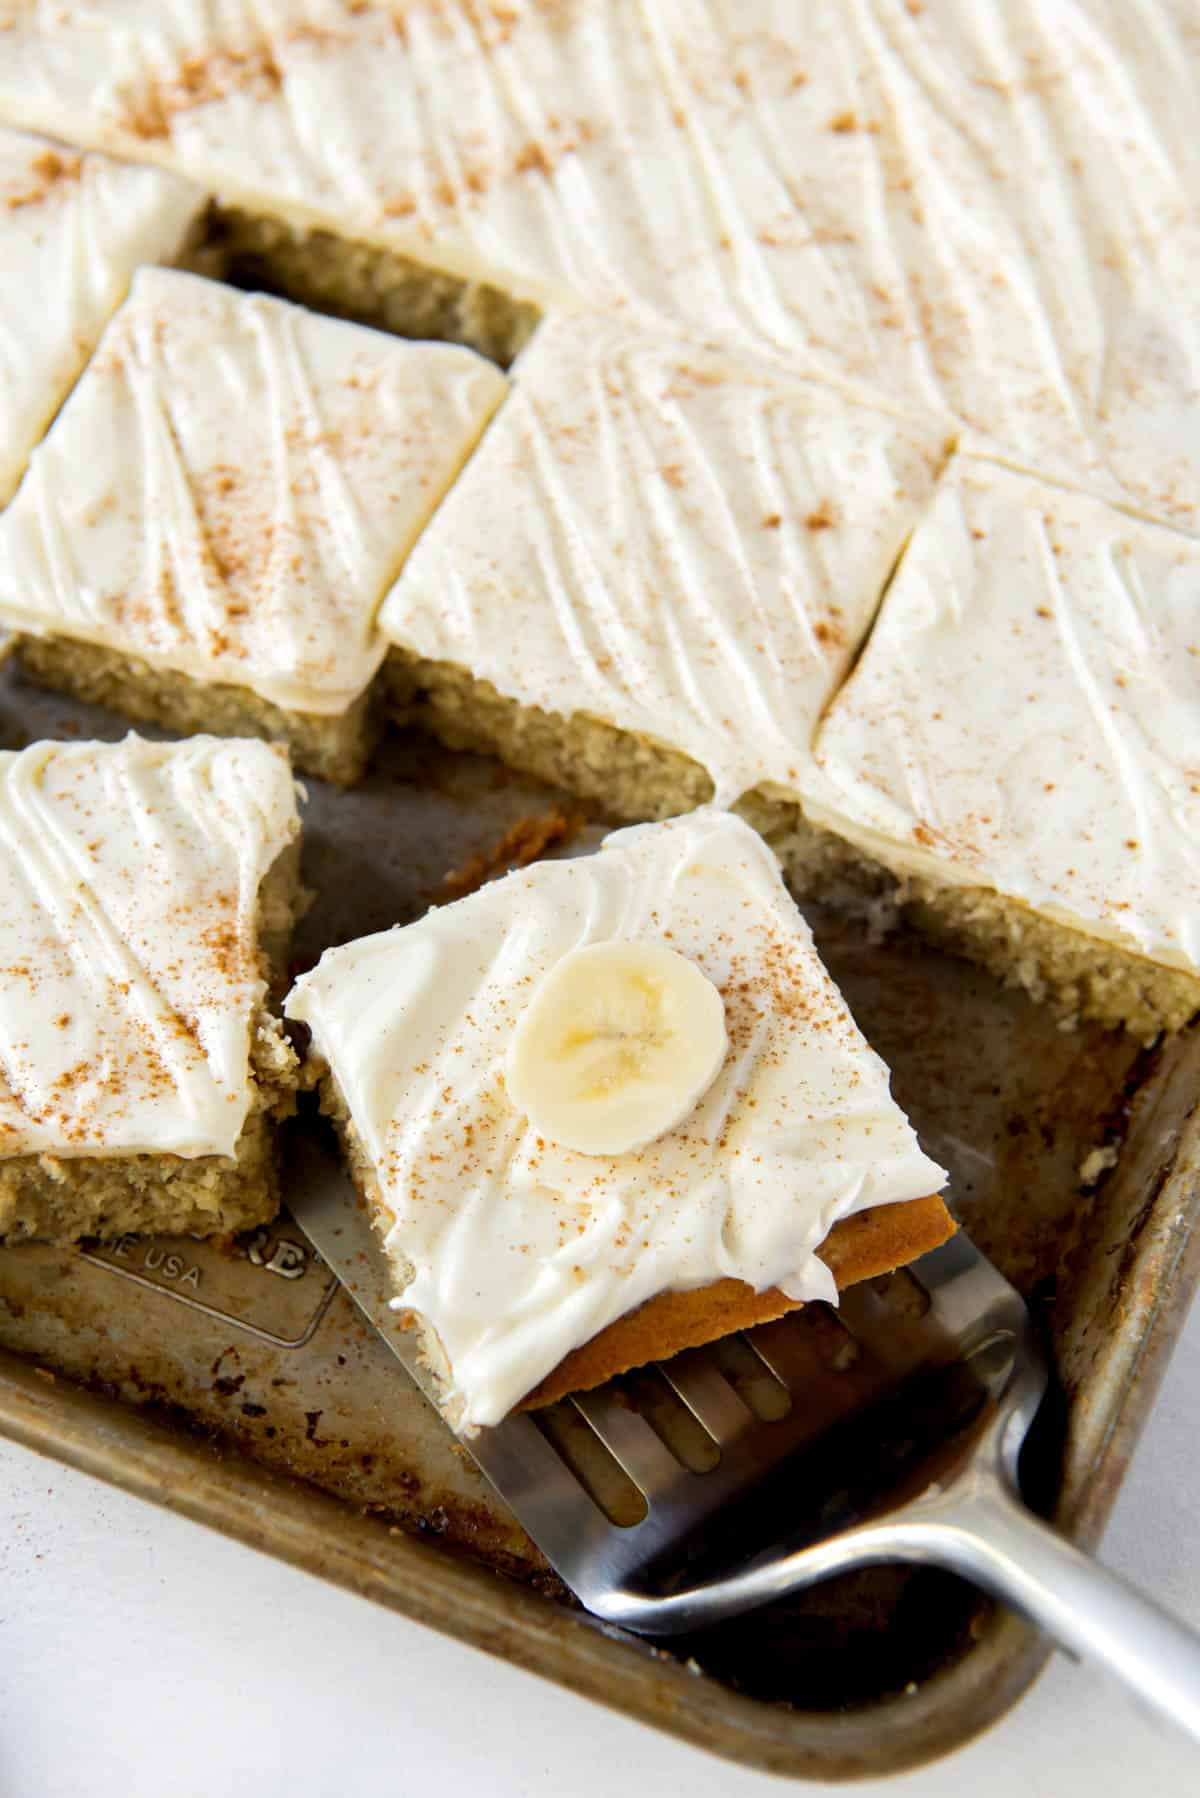 Banana bars with cream cheese on a sheet pan, one slice being served.